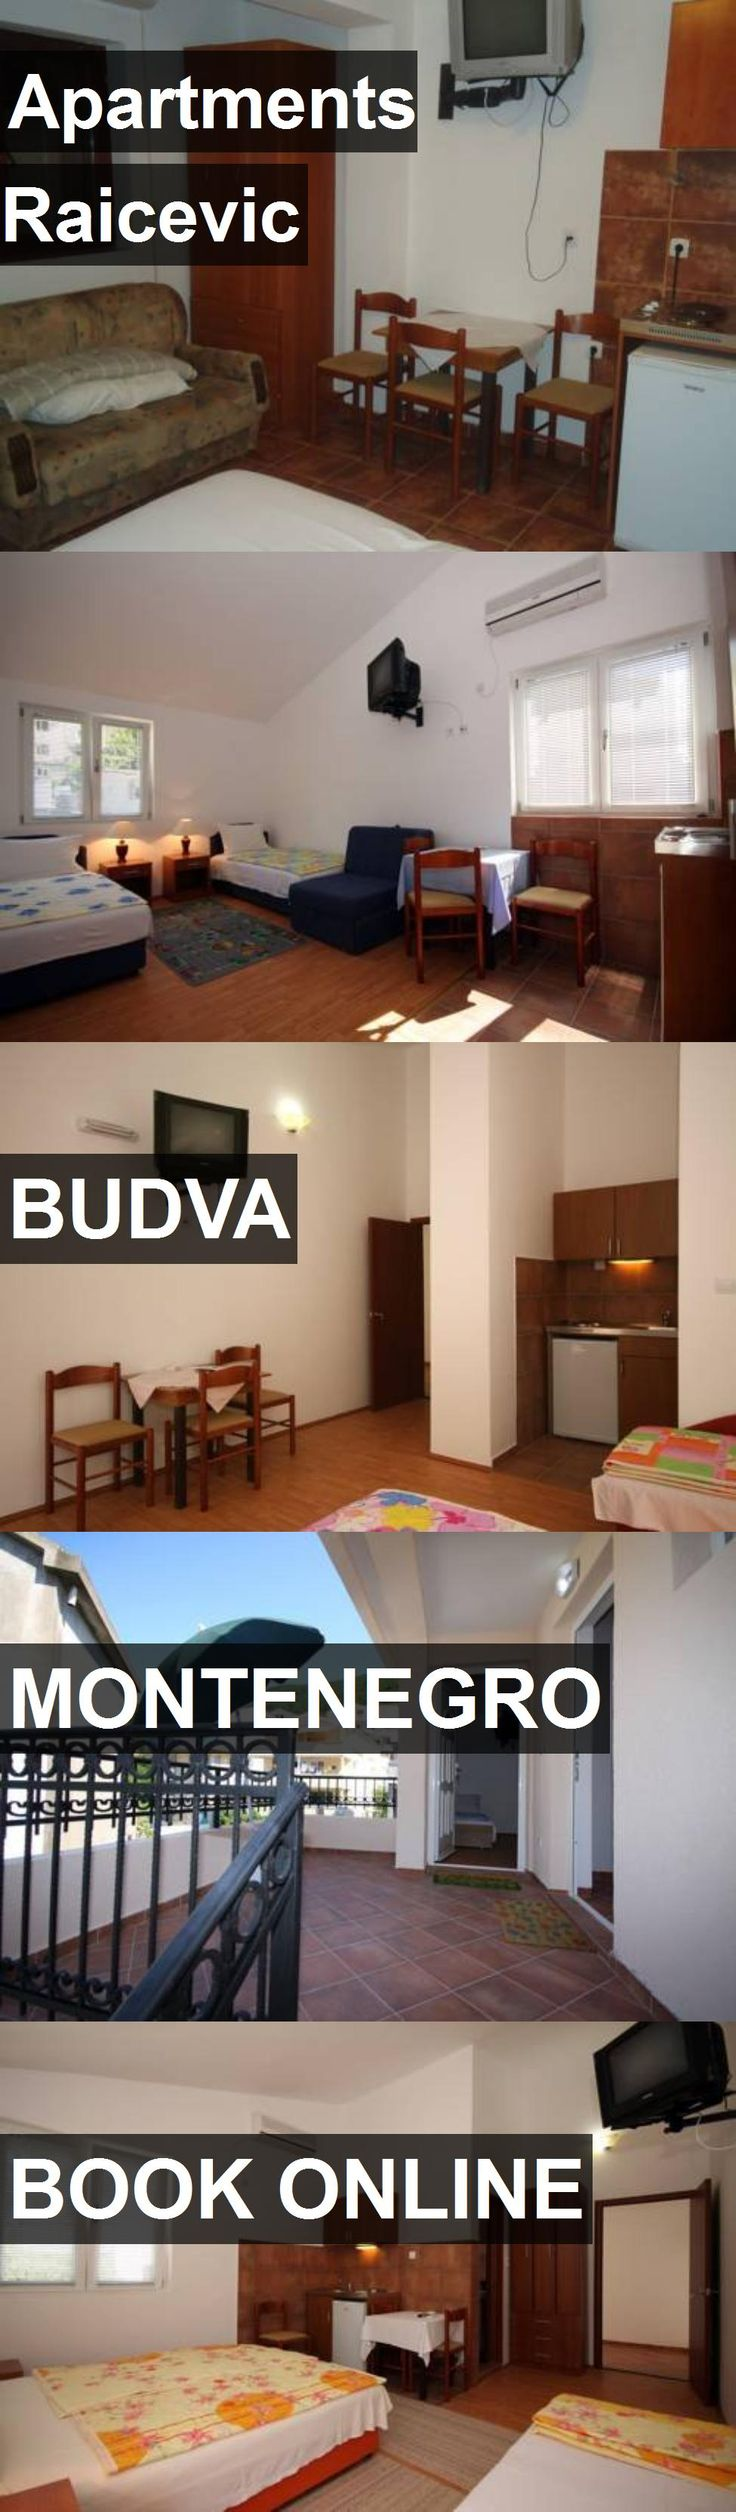 Hotel Apartments Raicevic in Budva, Montenegro. For more information, photos, reviews and best prices please follow the link. #Montenegro #Budva #hotel #travel #vacation